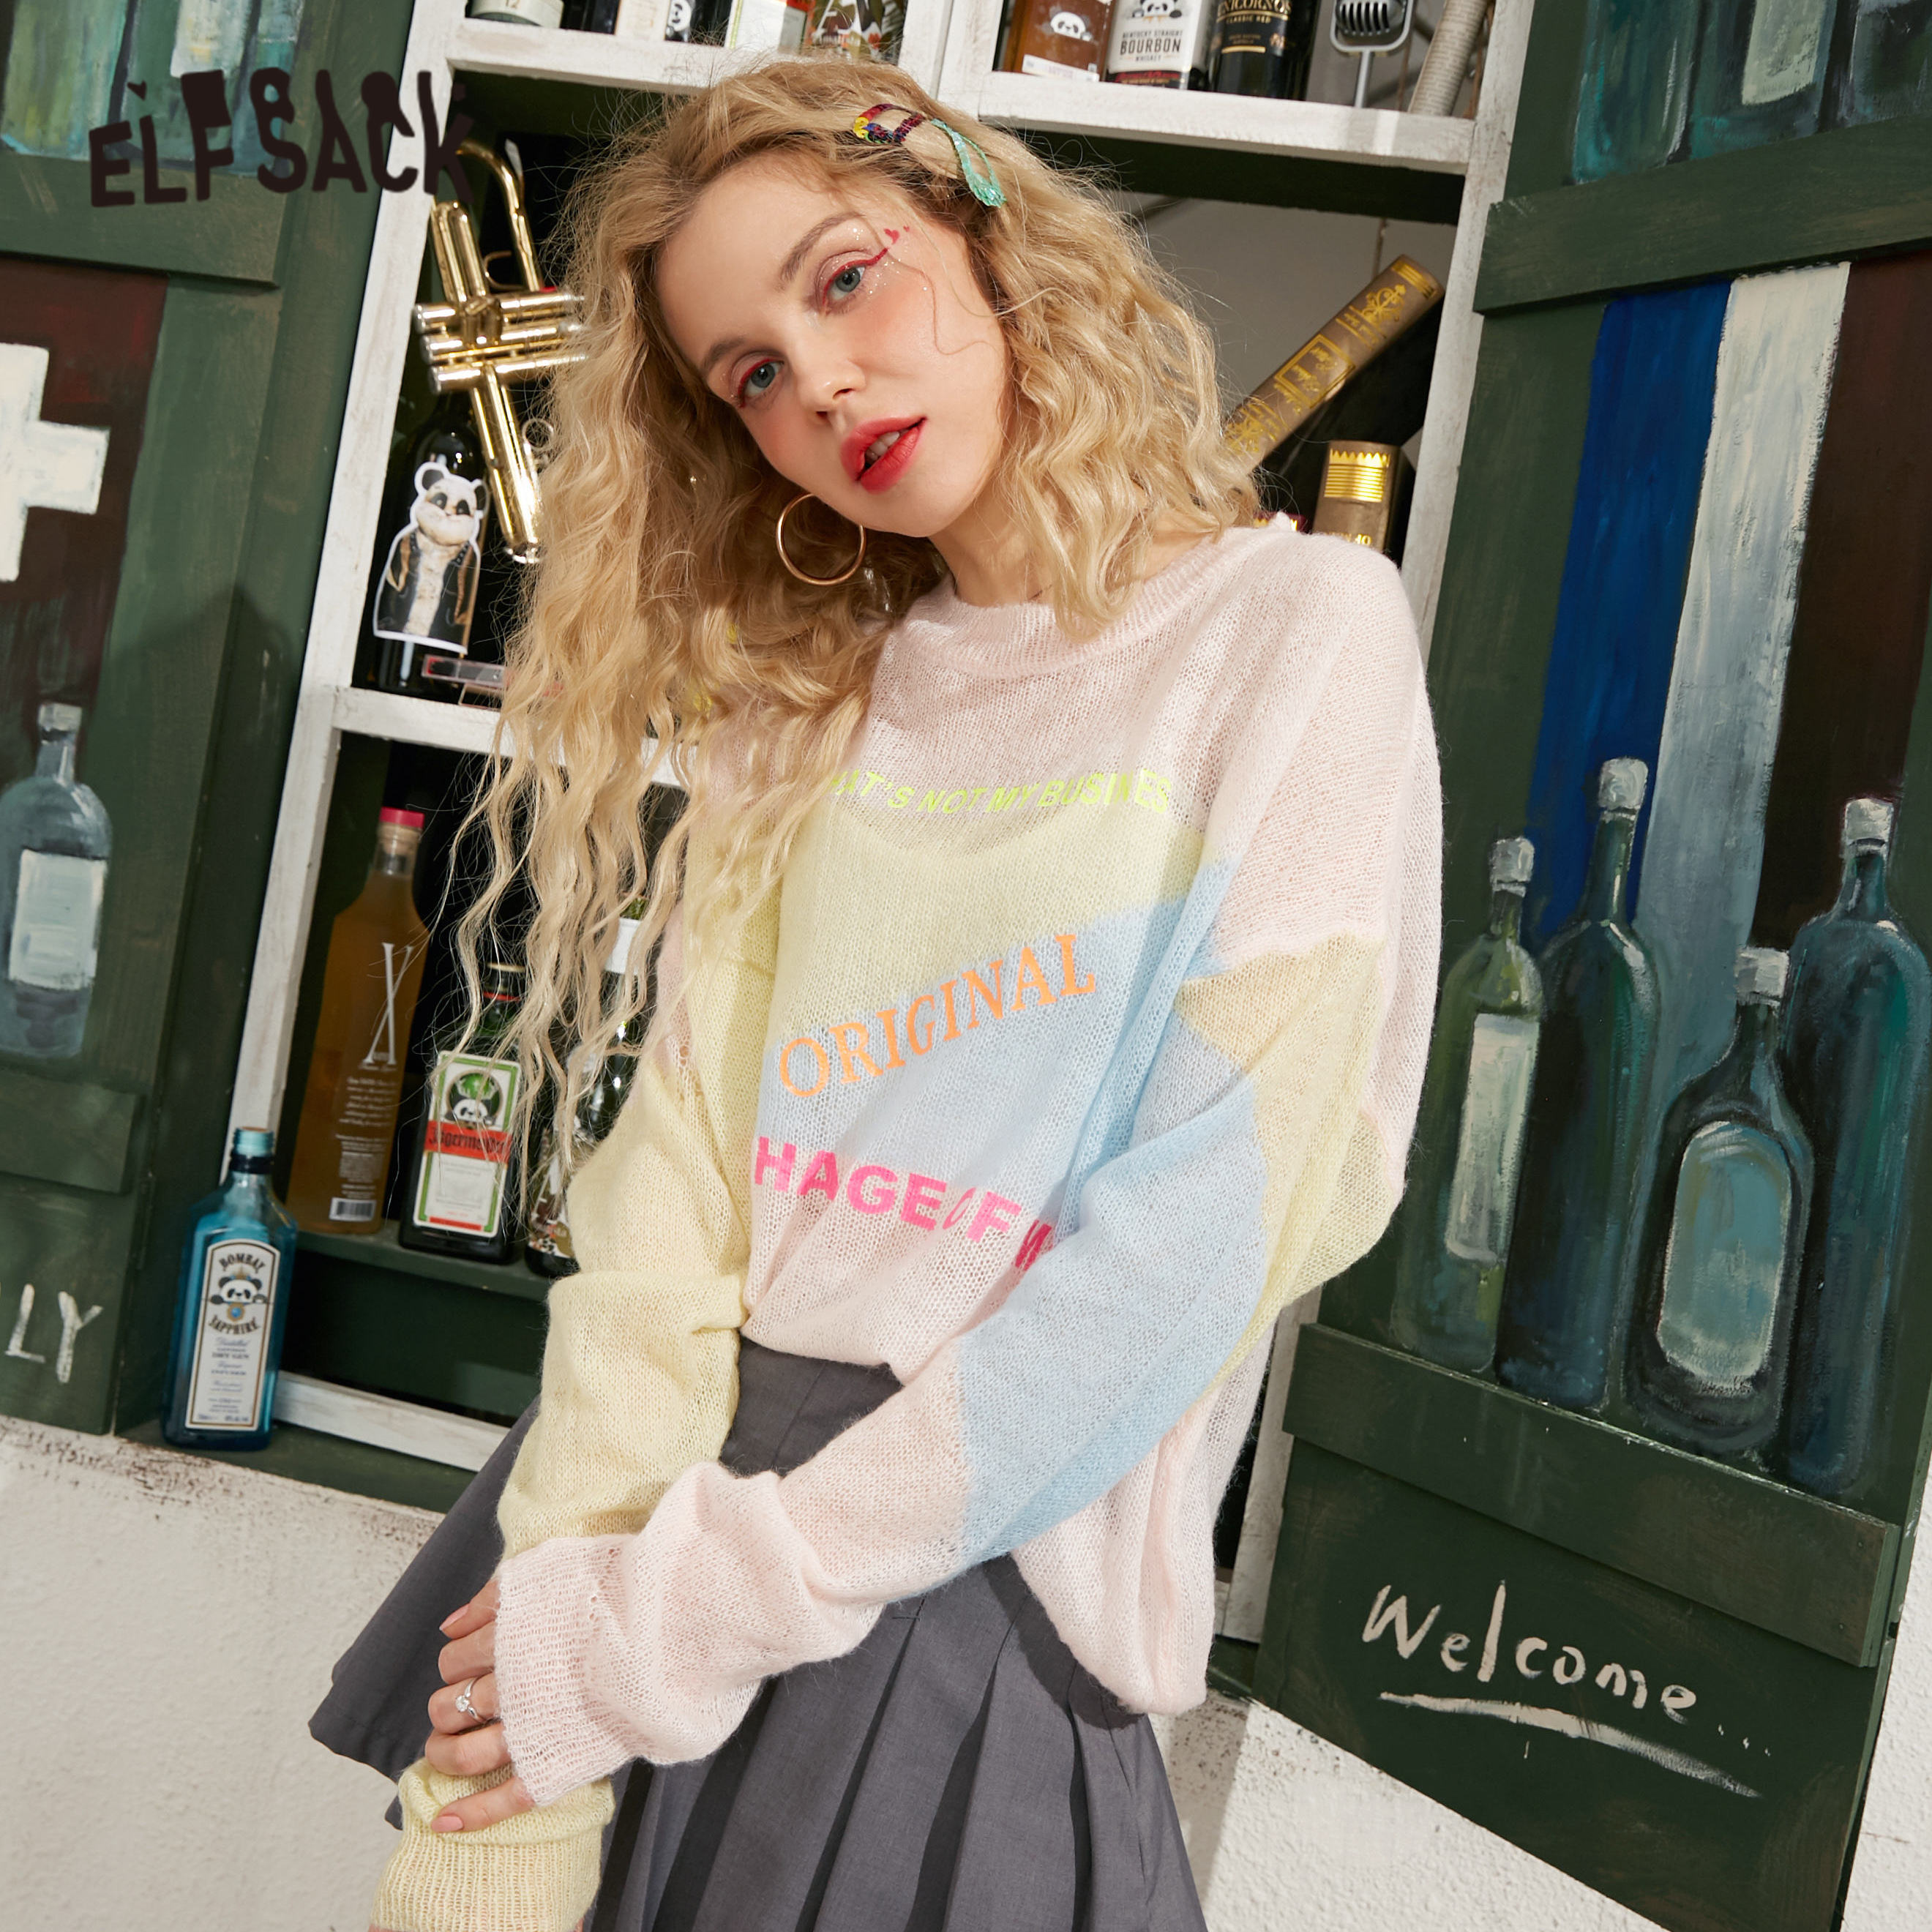 ELFSACK Icecream Letter Print Knitted Casual Pullover Women Sweater 2020 Summer ELF Pink Colorblock See-Through Korean Girly Top